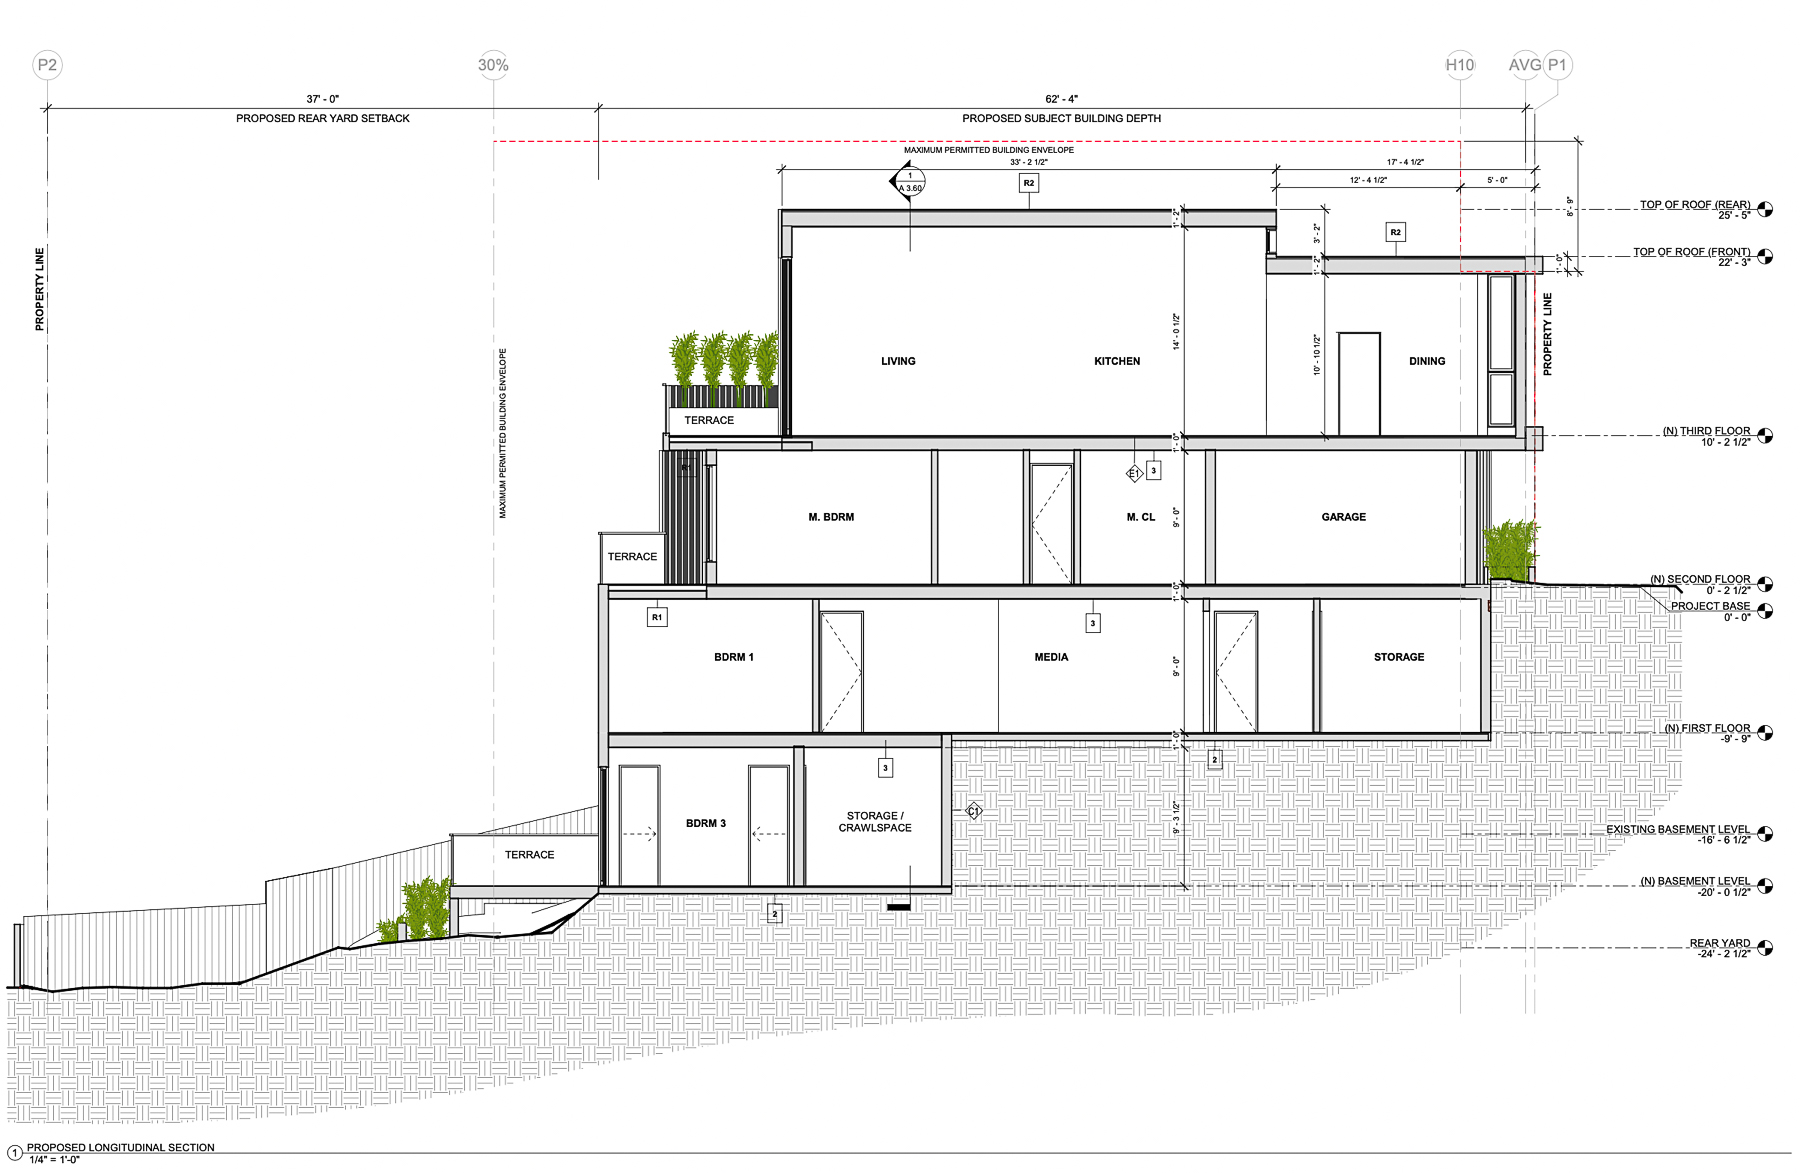 159 Laidley Street longitudinal section, elevation by Winder Gibson Architects